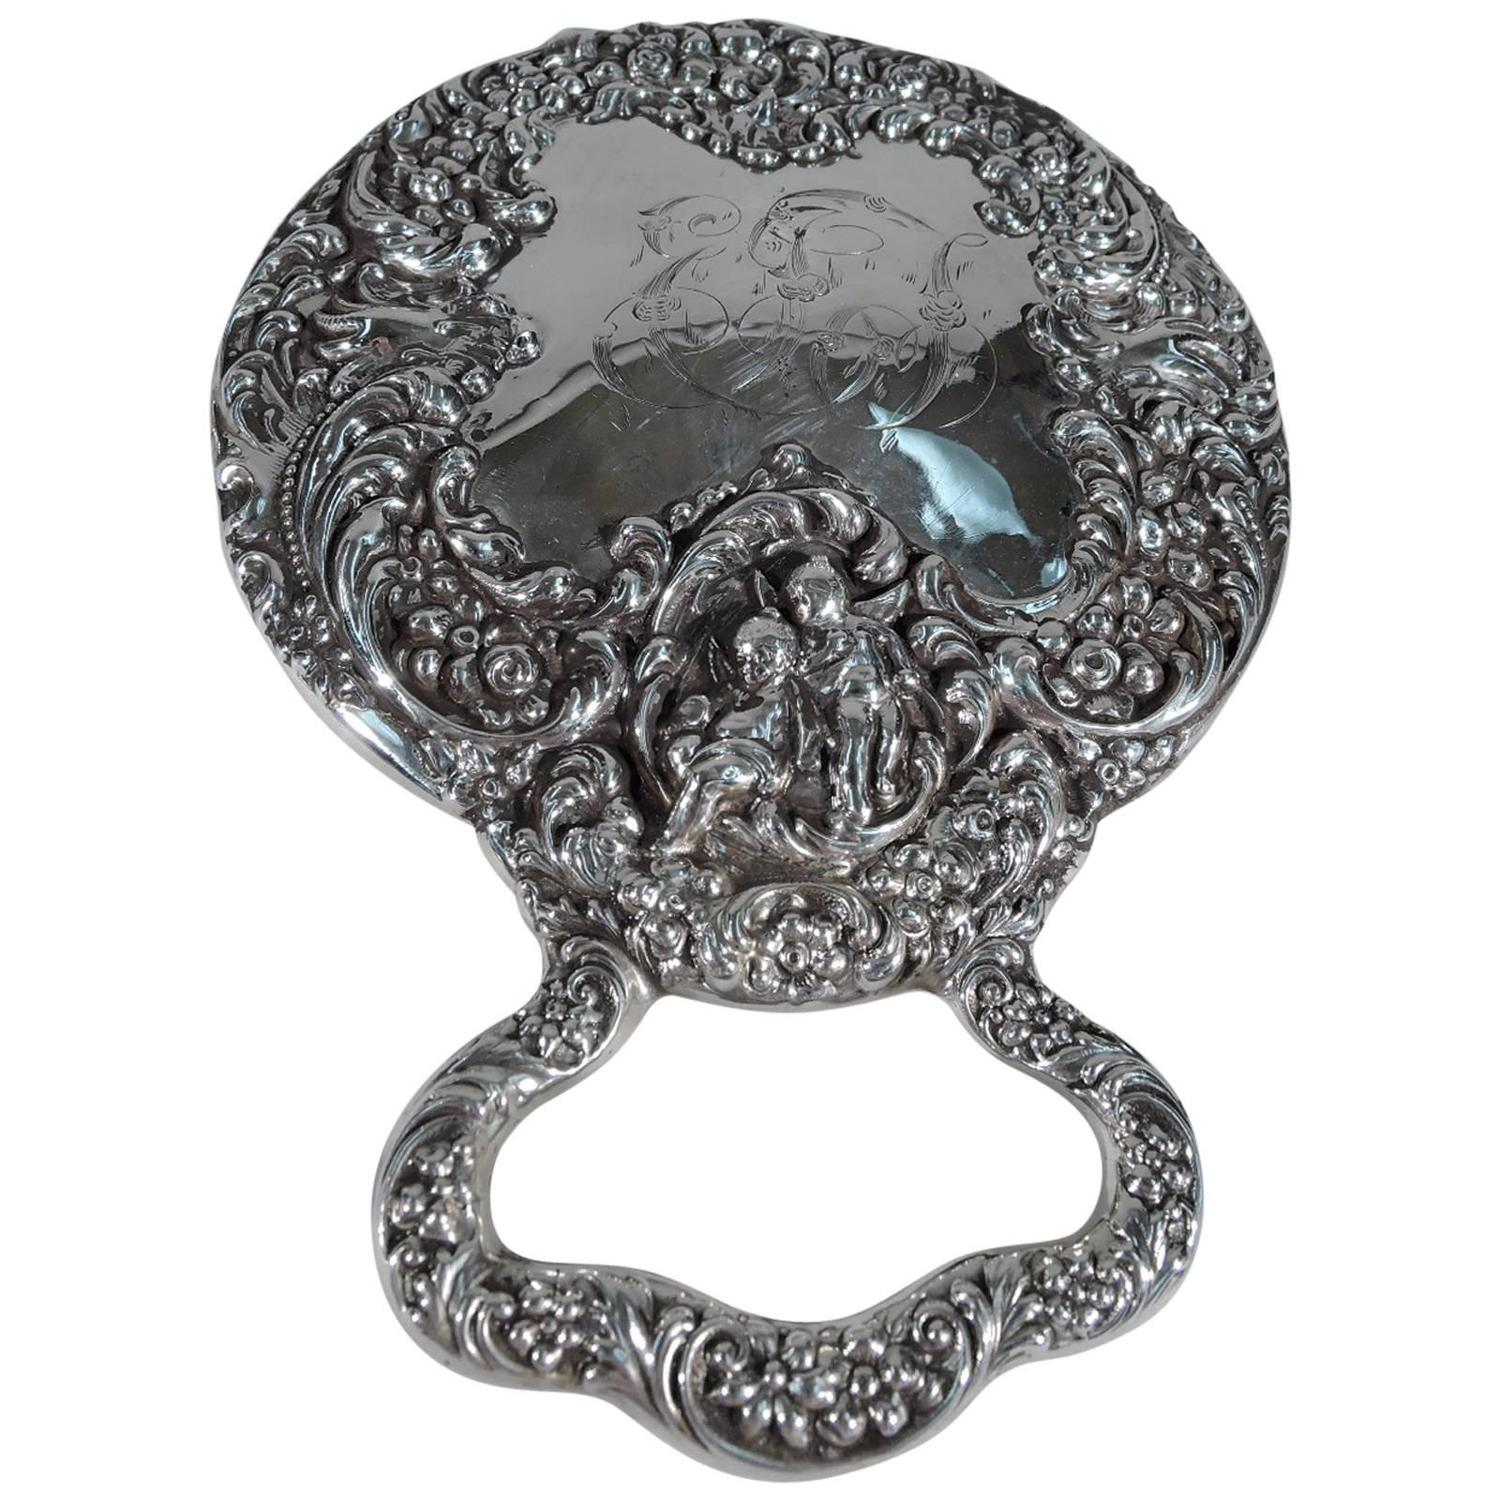 Art nouveau sterling silver mirror by very collectible for Silver mirrors for sale